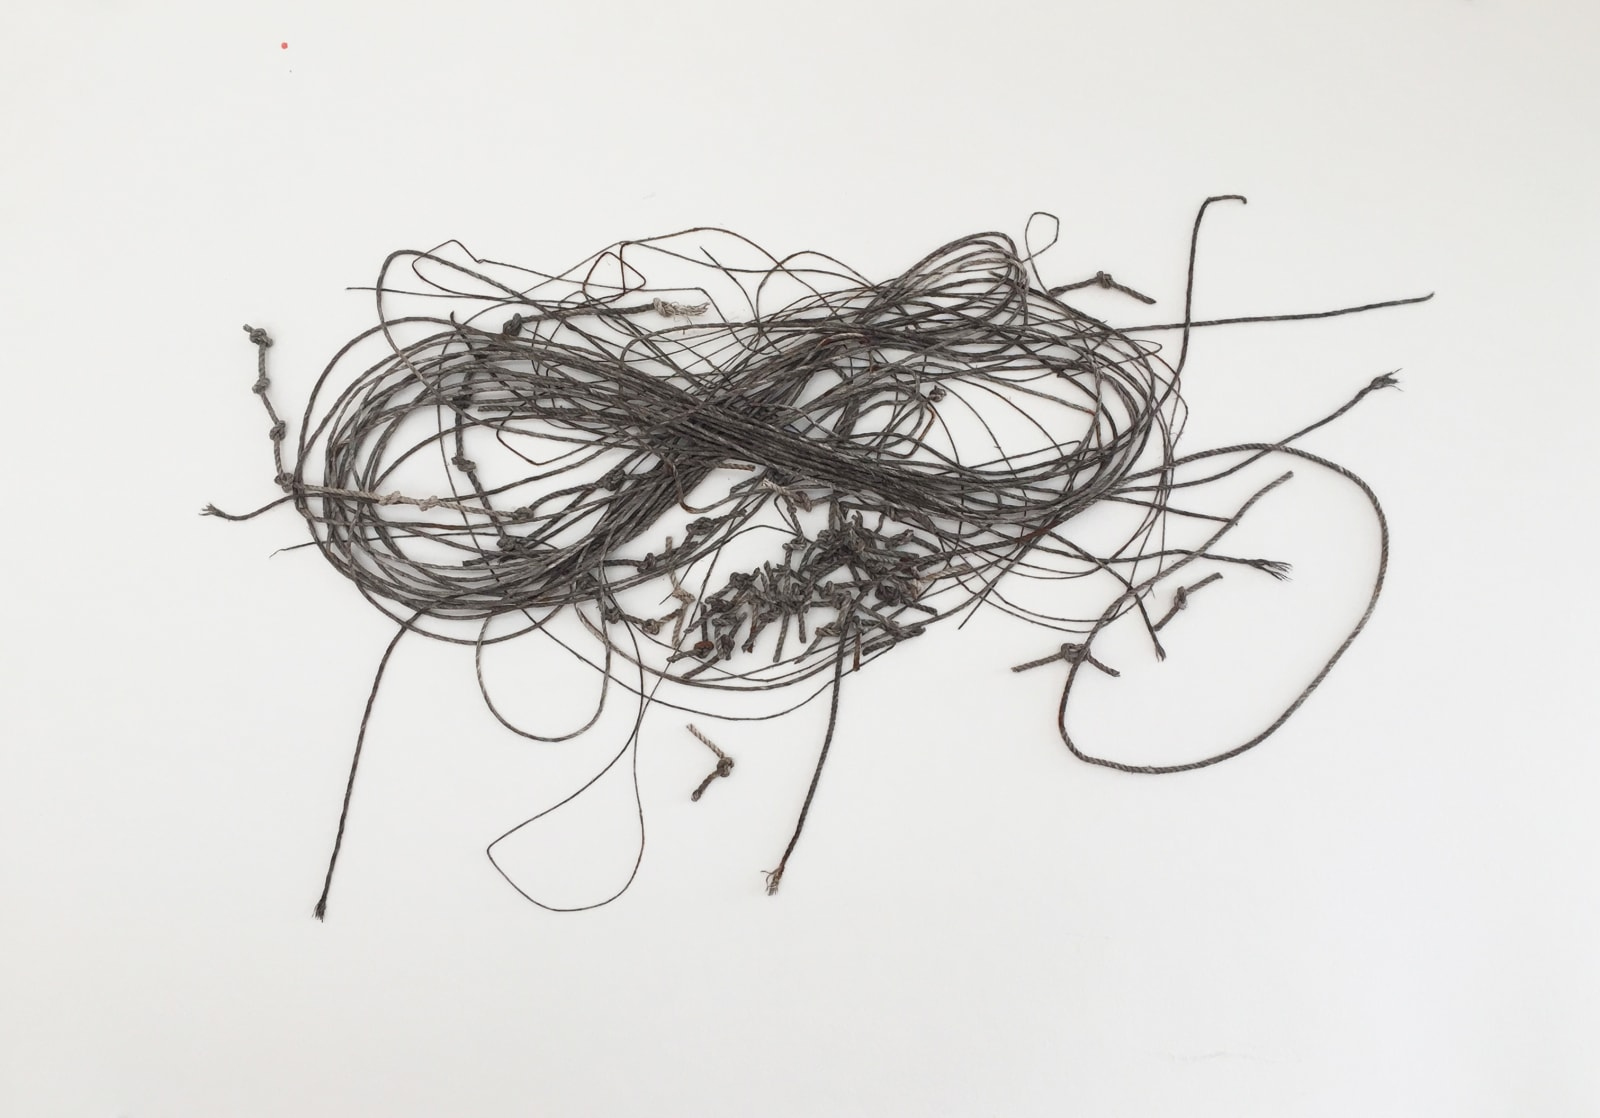 Toni Ross Cursive Drawing #5, 2019 Mixed media on paper 28 1/2 x 41 in. (TR 218) $7,500